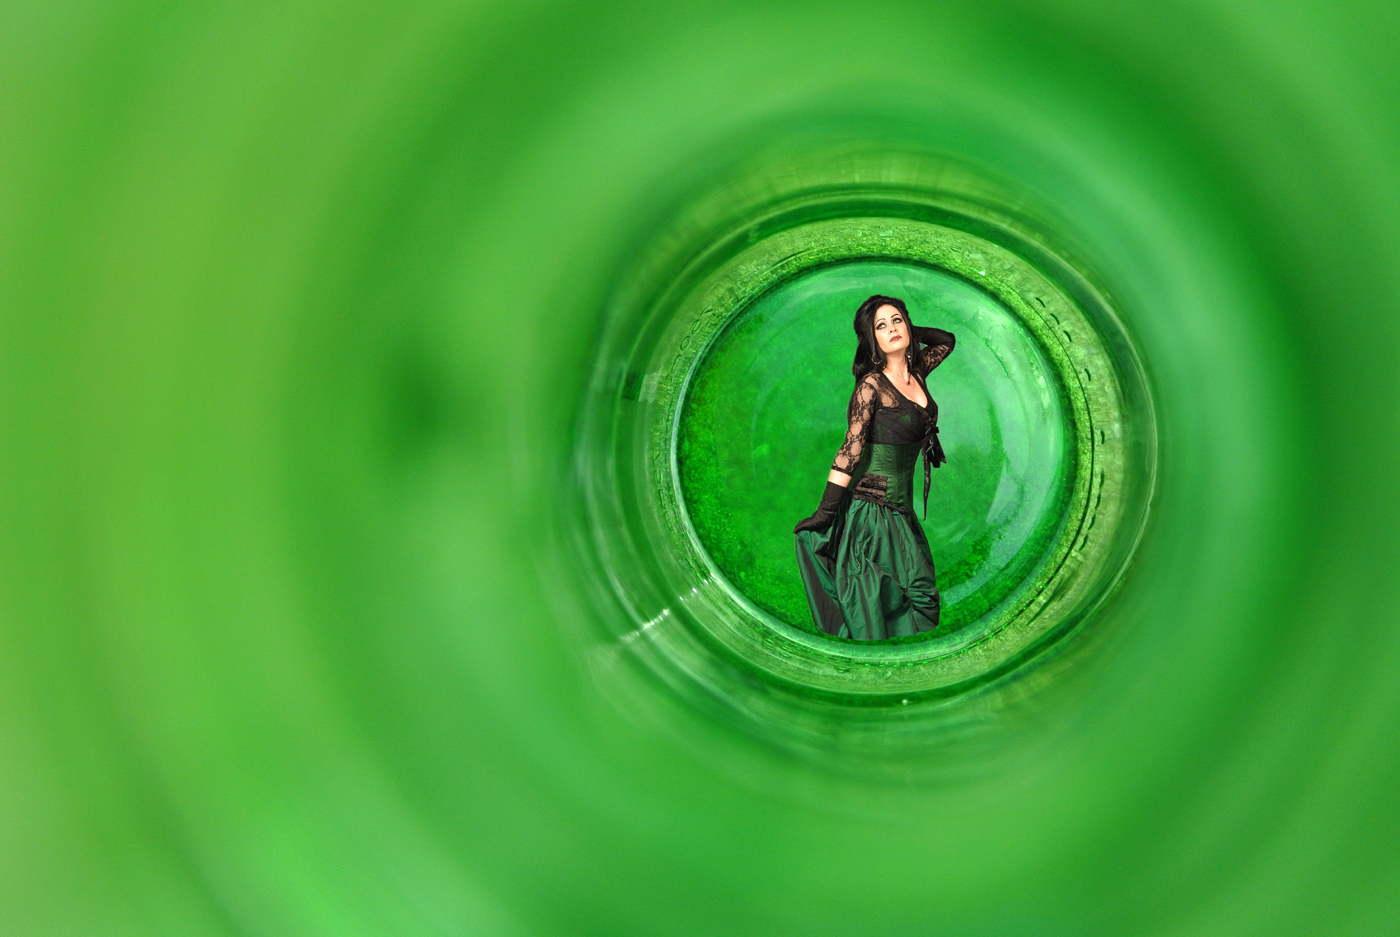 Green Bottle#Bhamra Suki